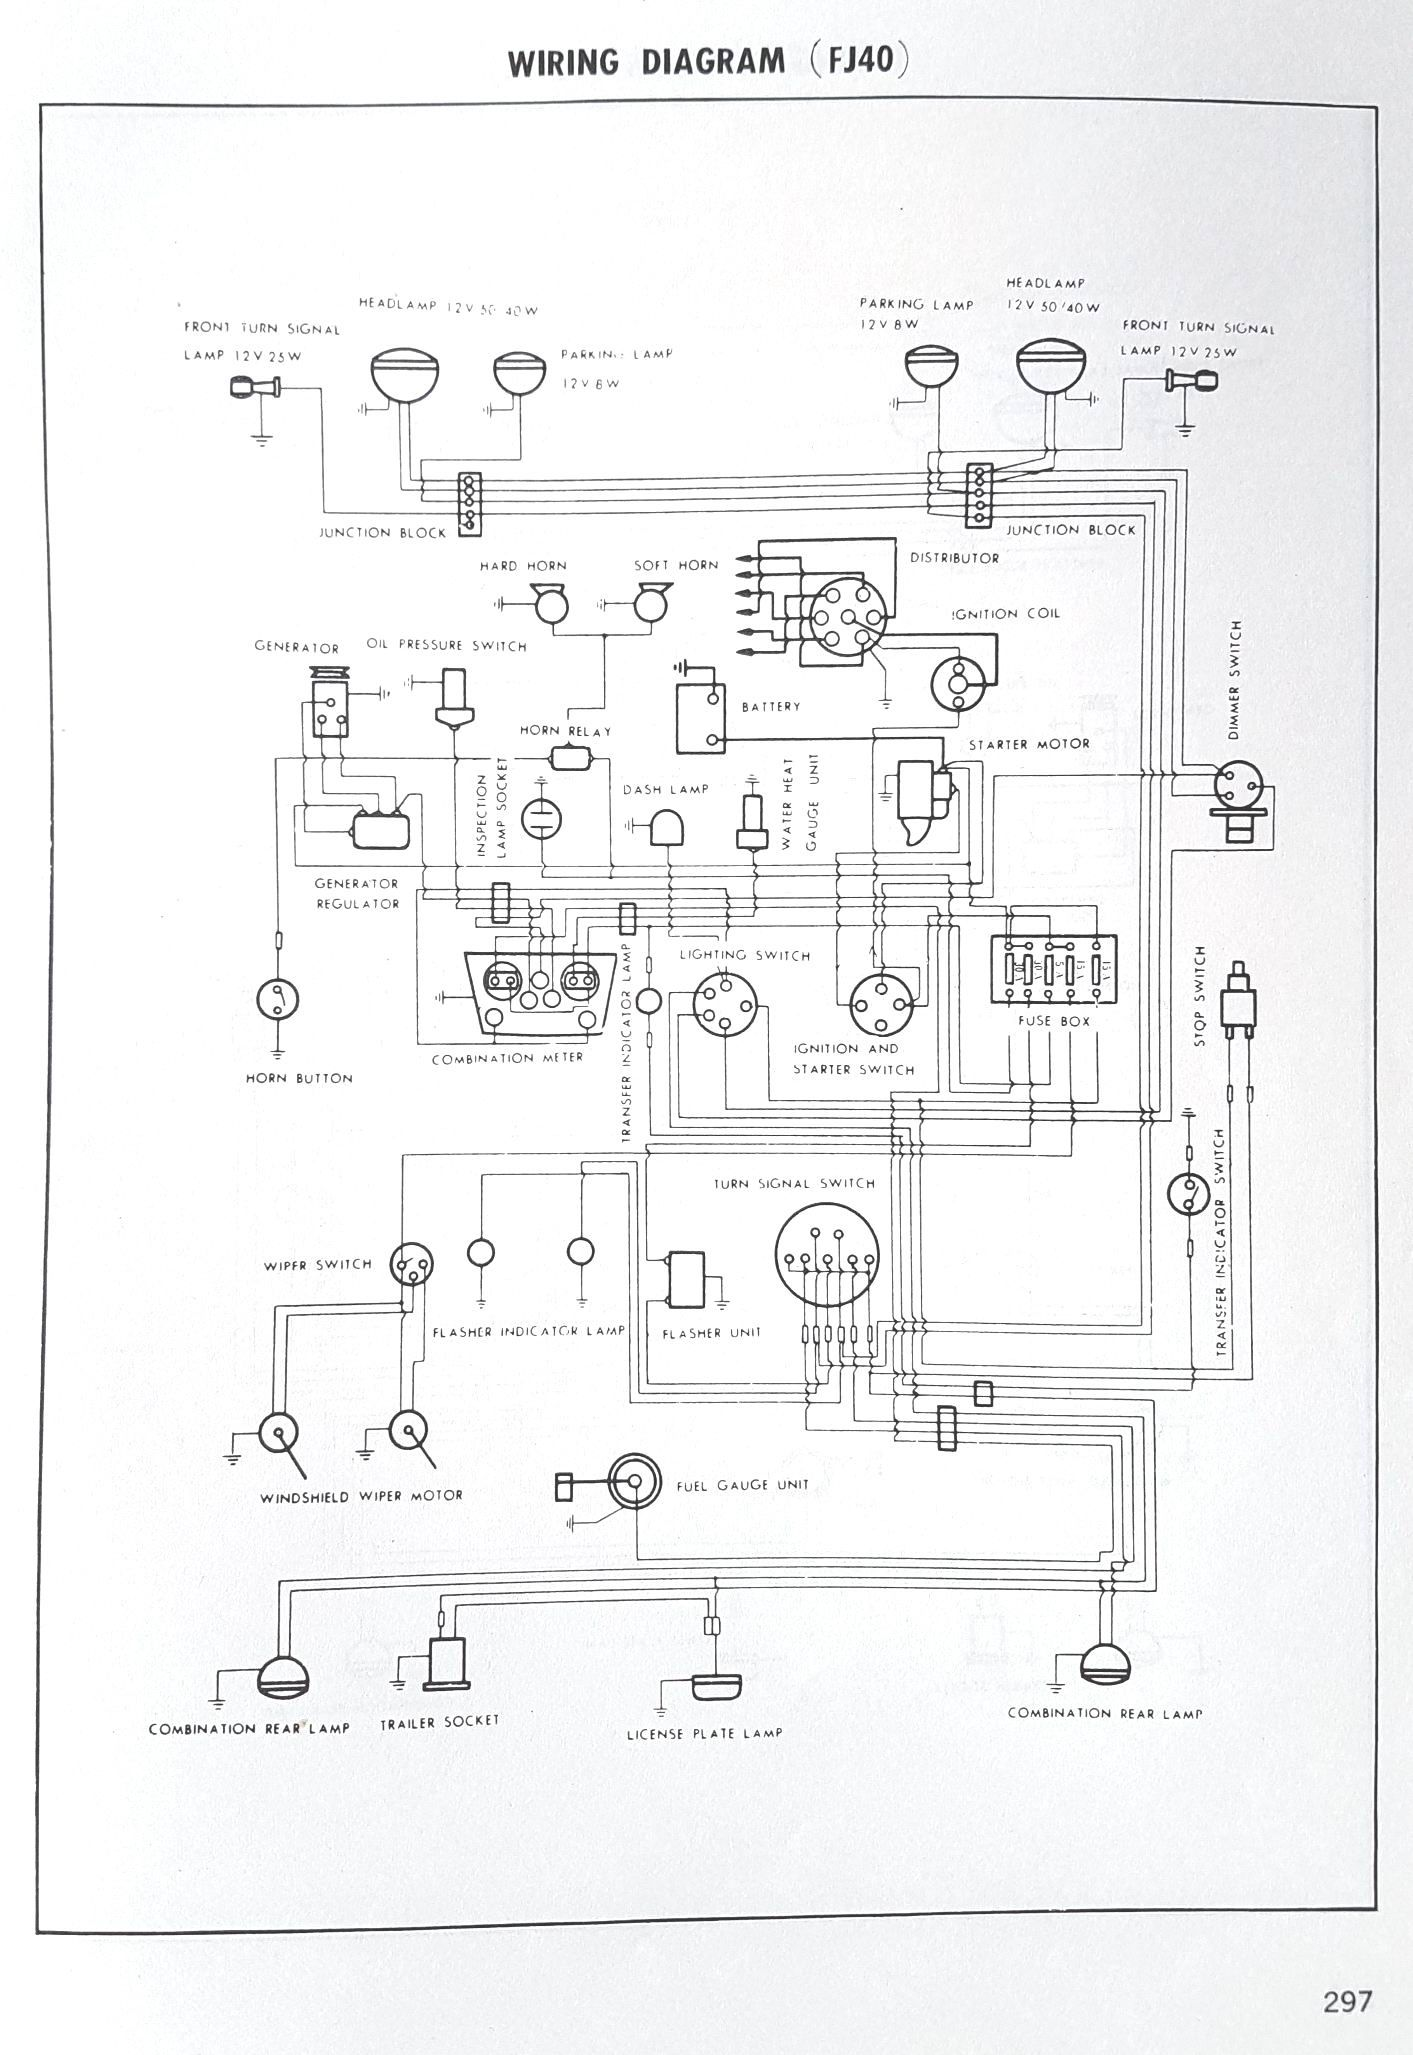 toyota landcruiser service manual wiring diagram fj40 [ 1413 x 2055 Pixel ]